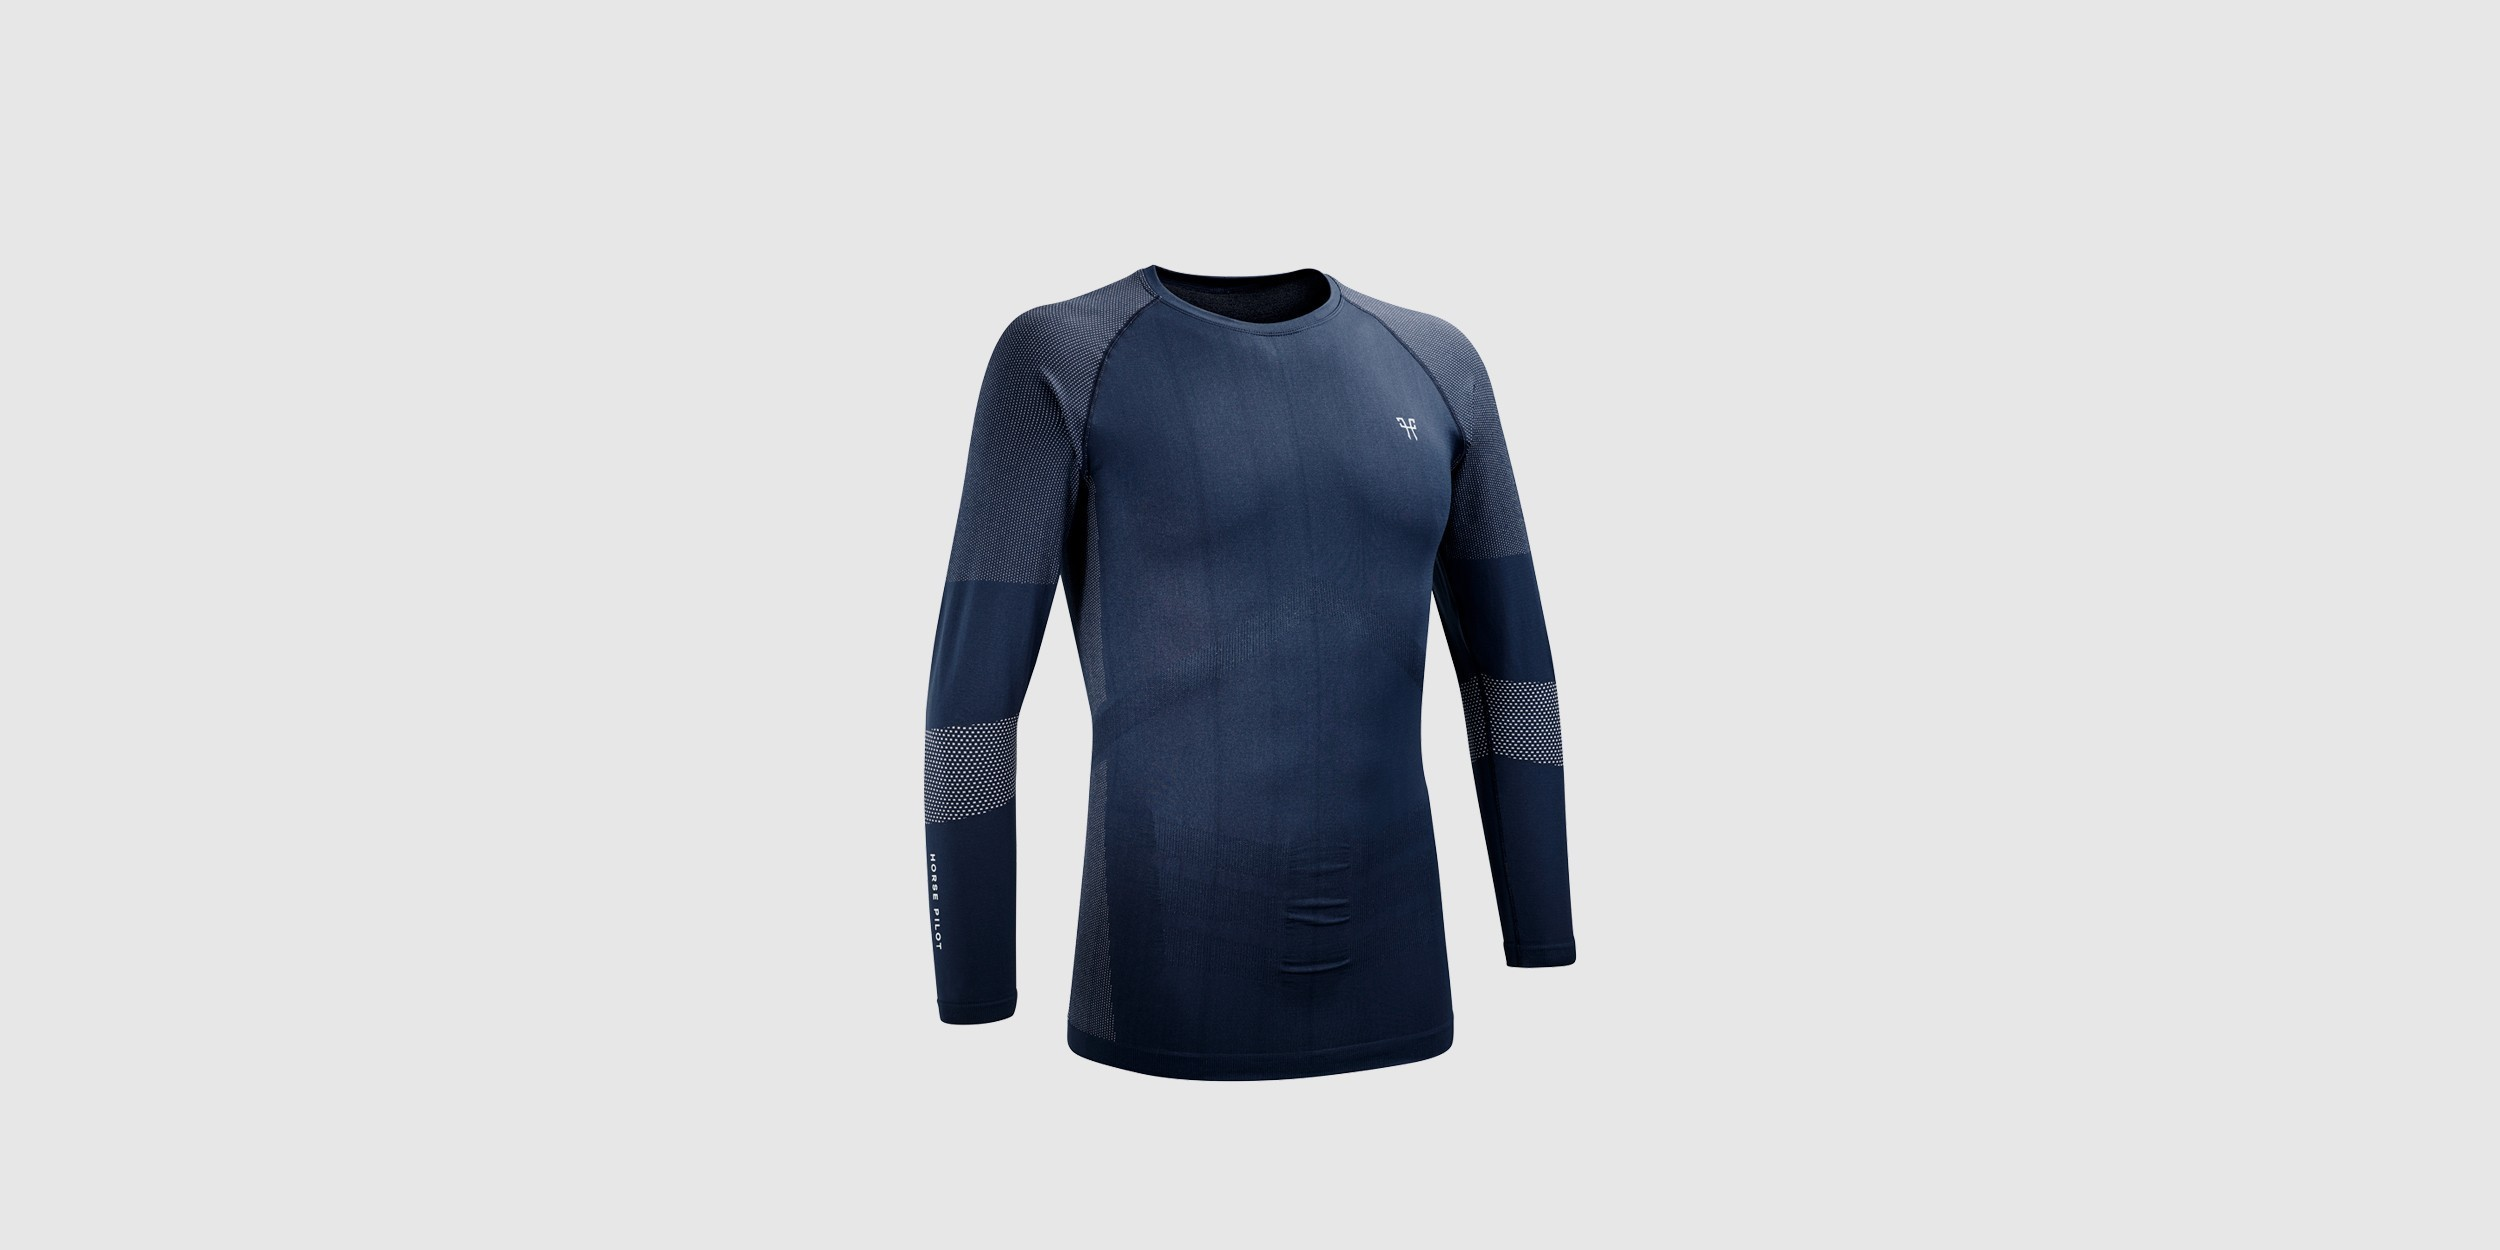 Men's technical long-sleeved T-shirt